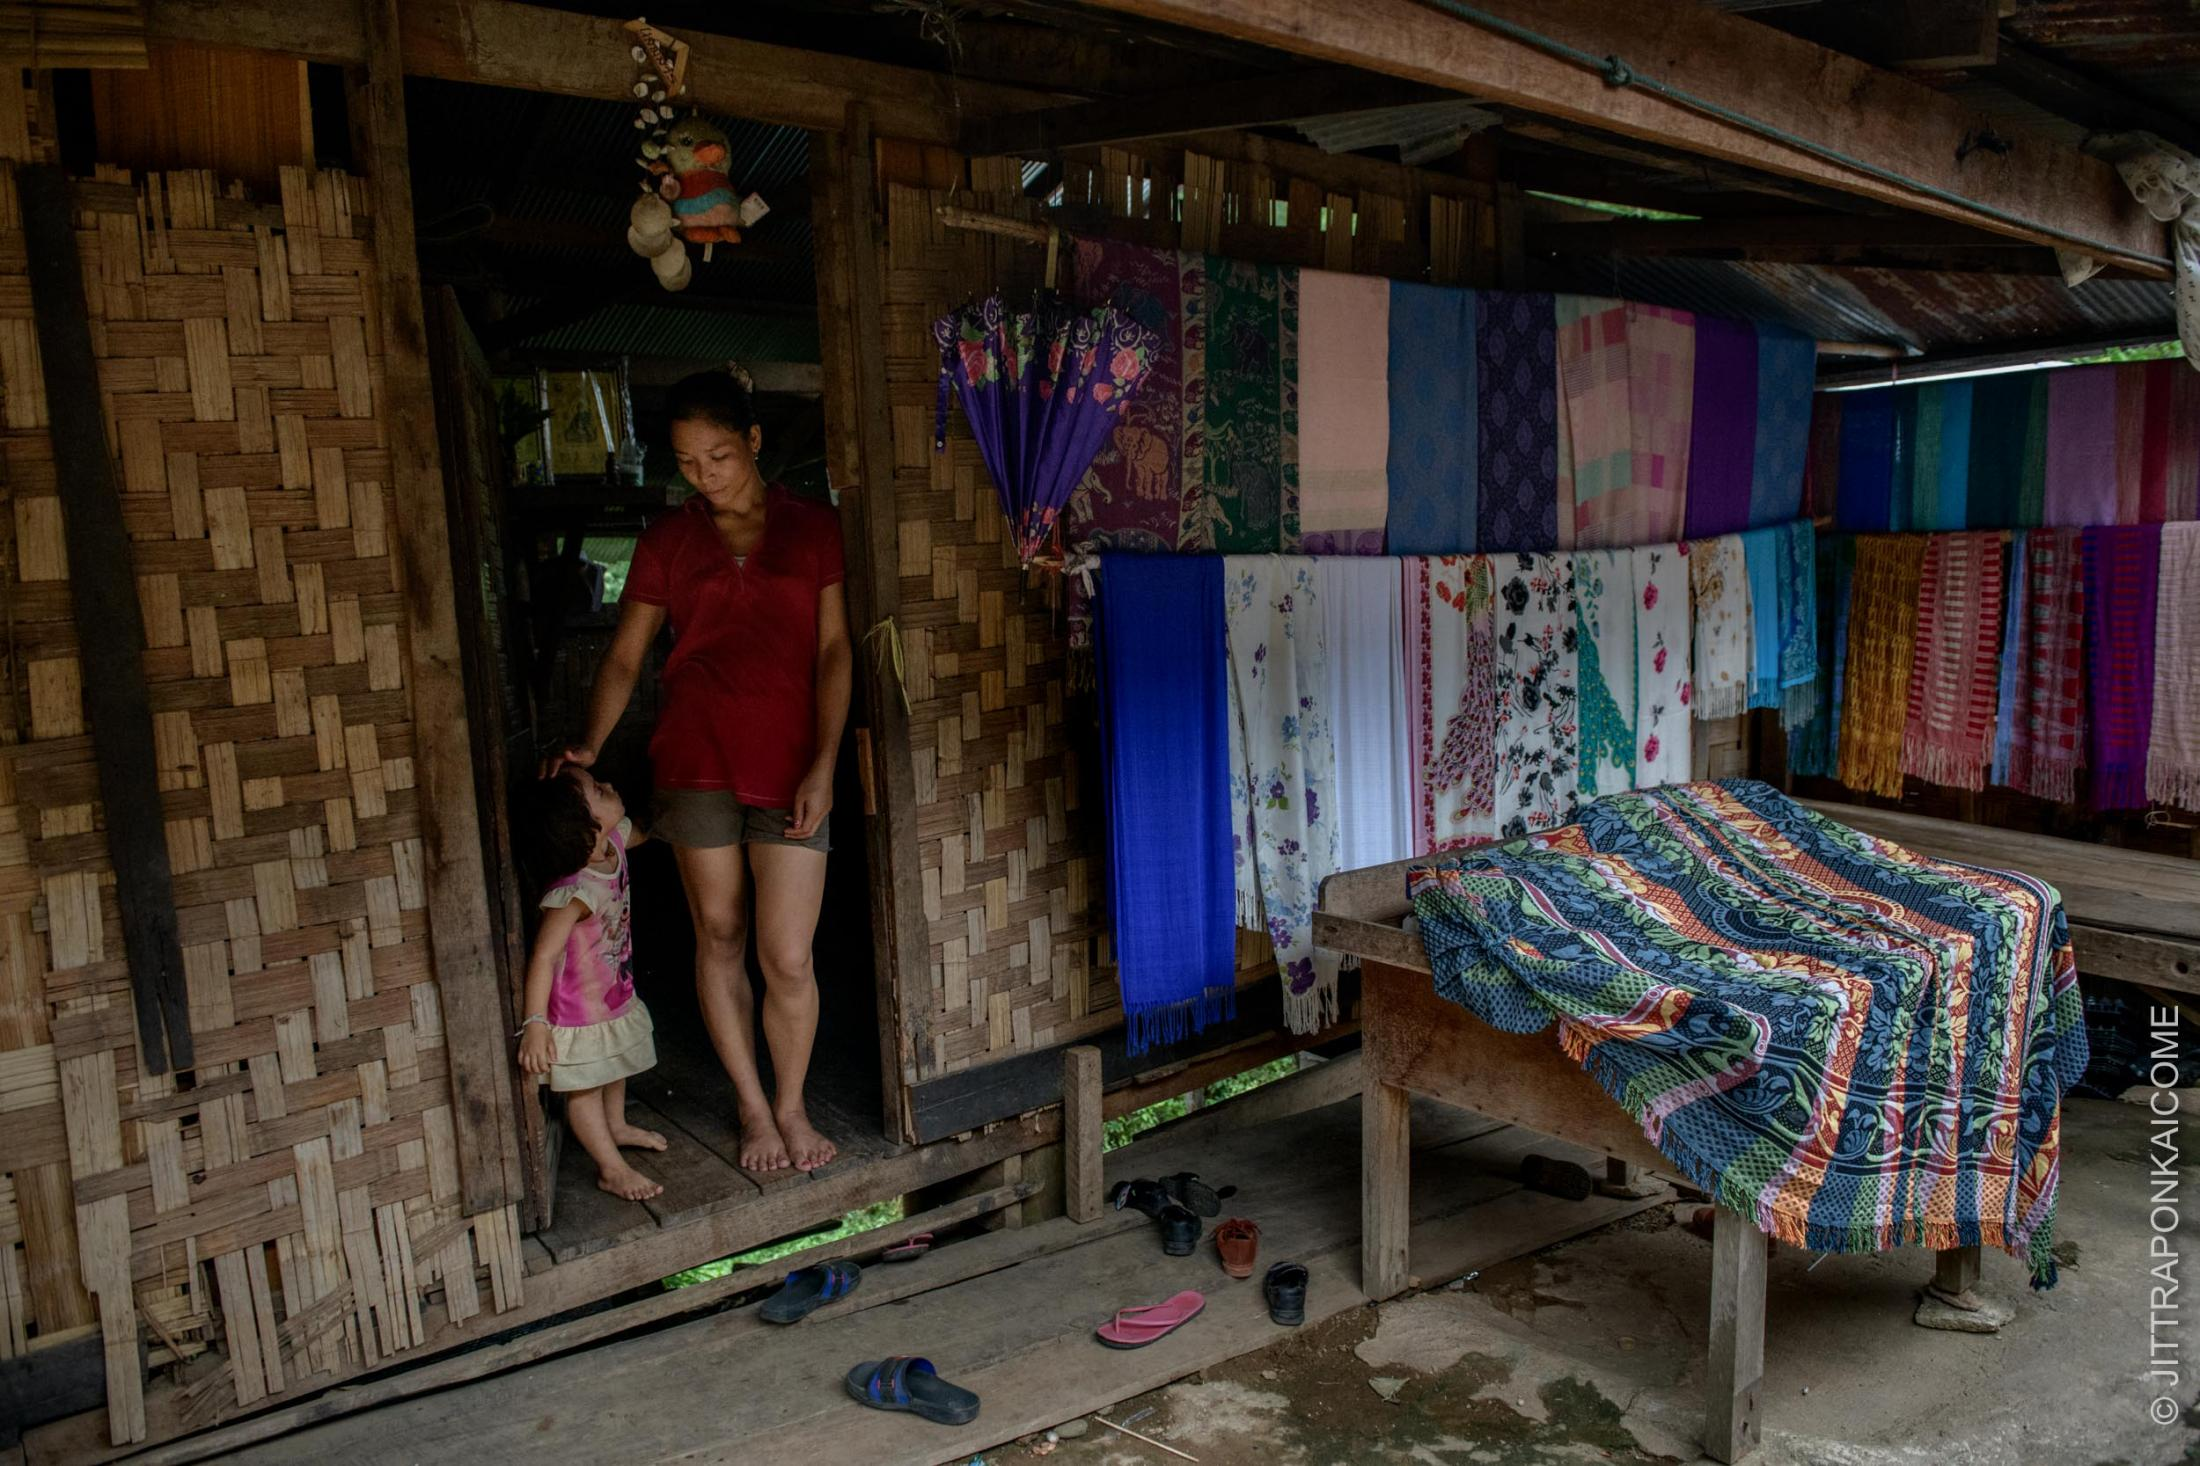 Mae Hong Son - Ma Prang, 30 years old Kayan long neck woman in Huey Pu Keng lost her job at a tourist tribal village in Chiang Mai. She can not predict when she will ever be employed again, she said. Due to the future of this crisis is still uncertain.